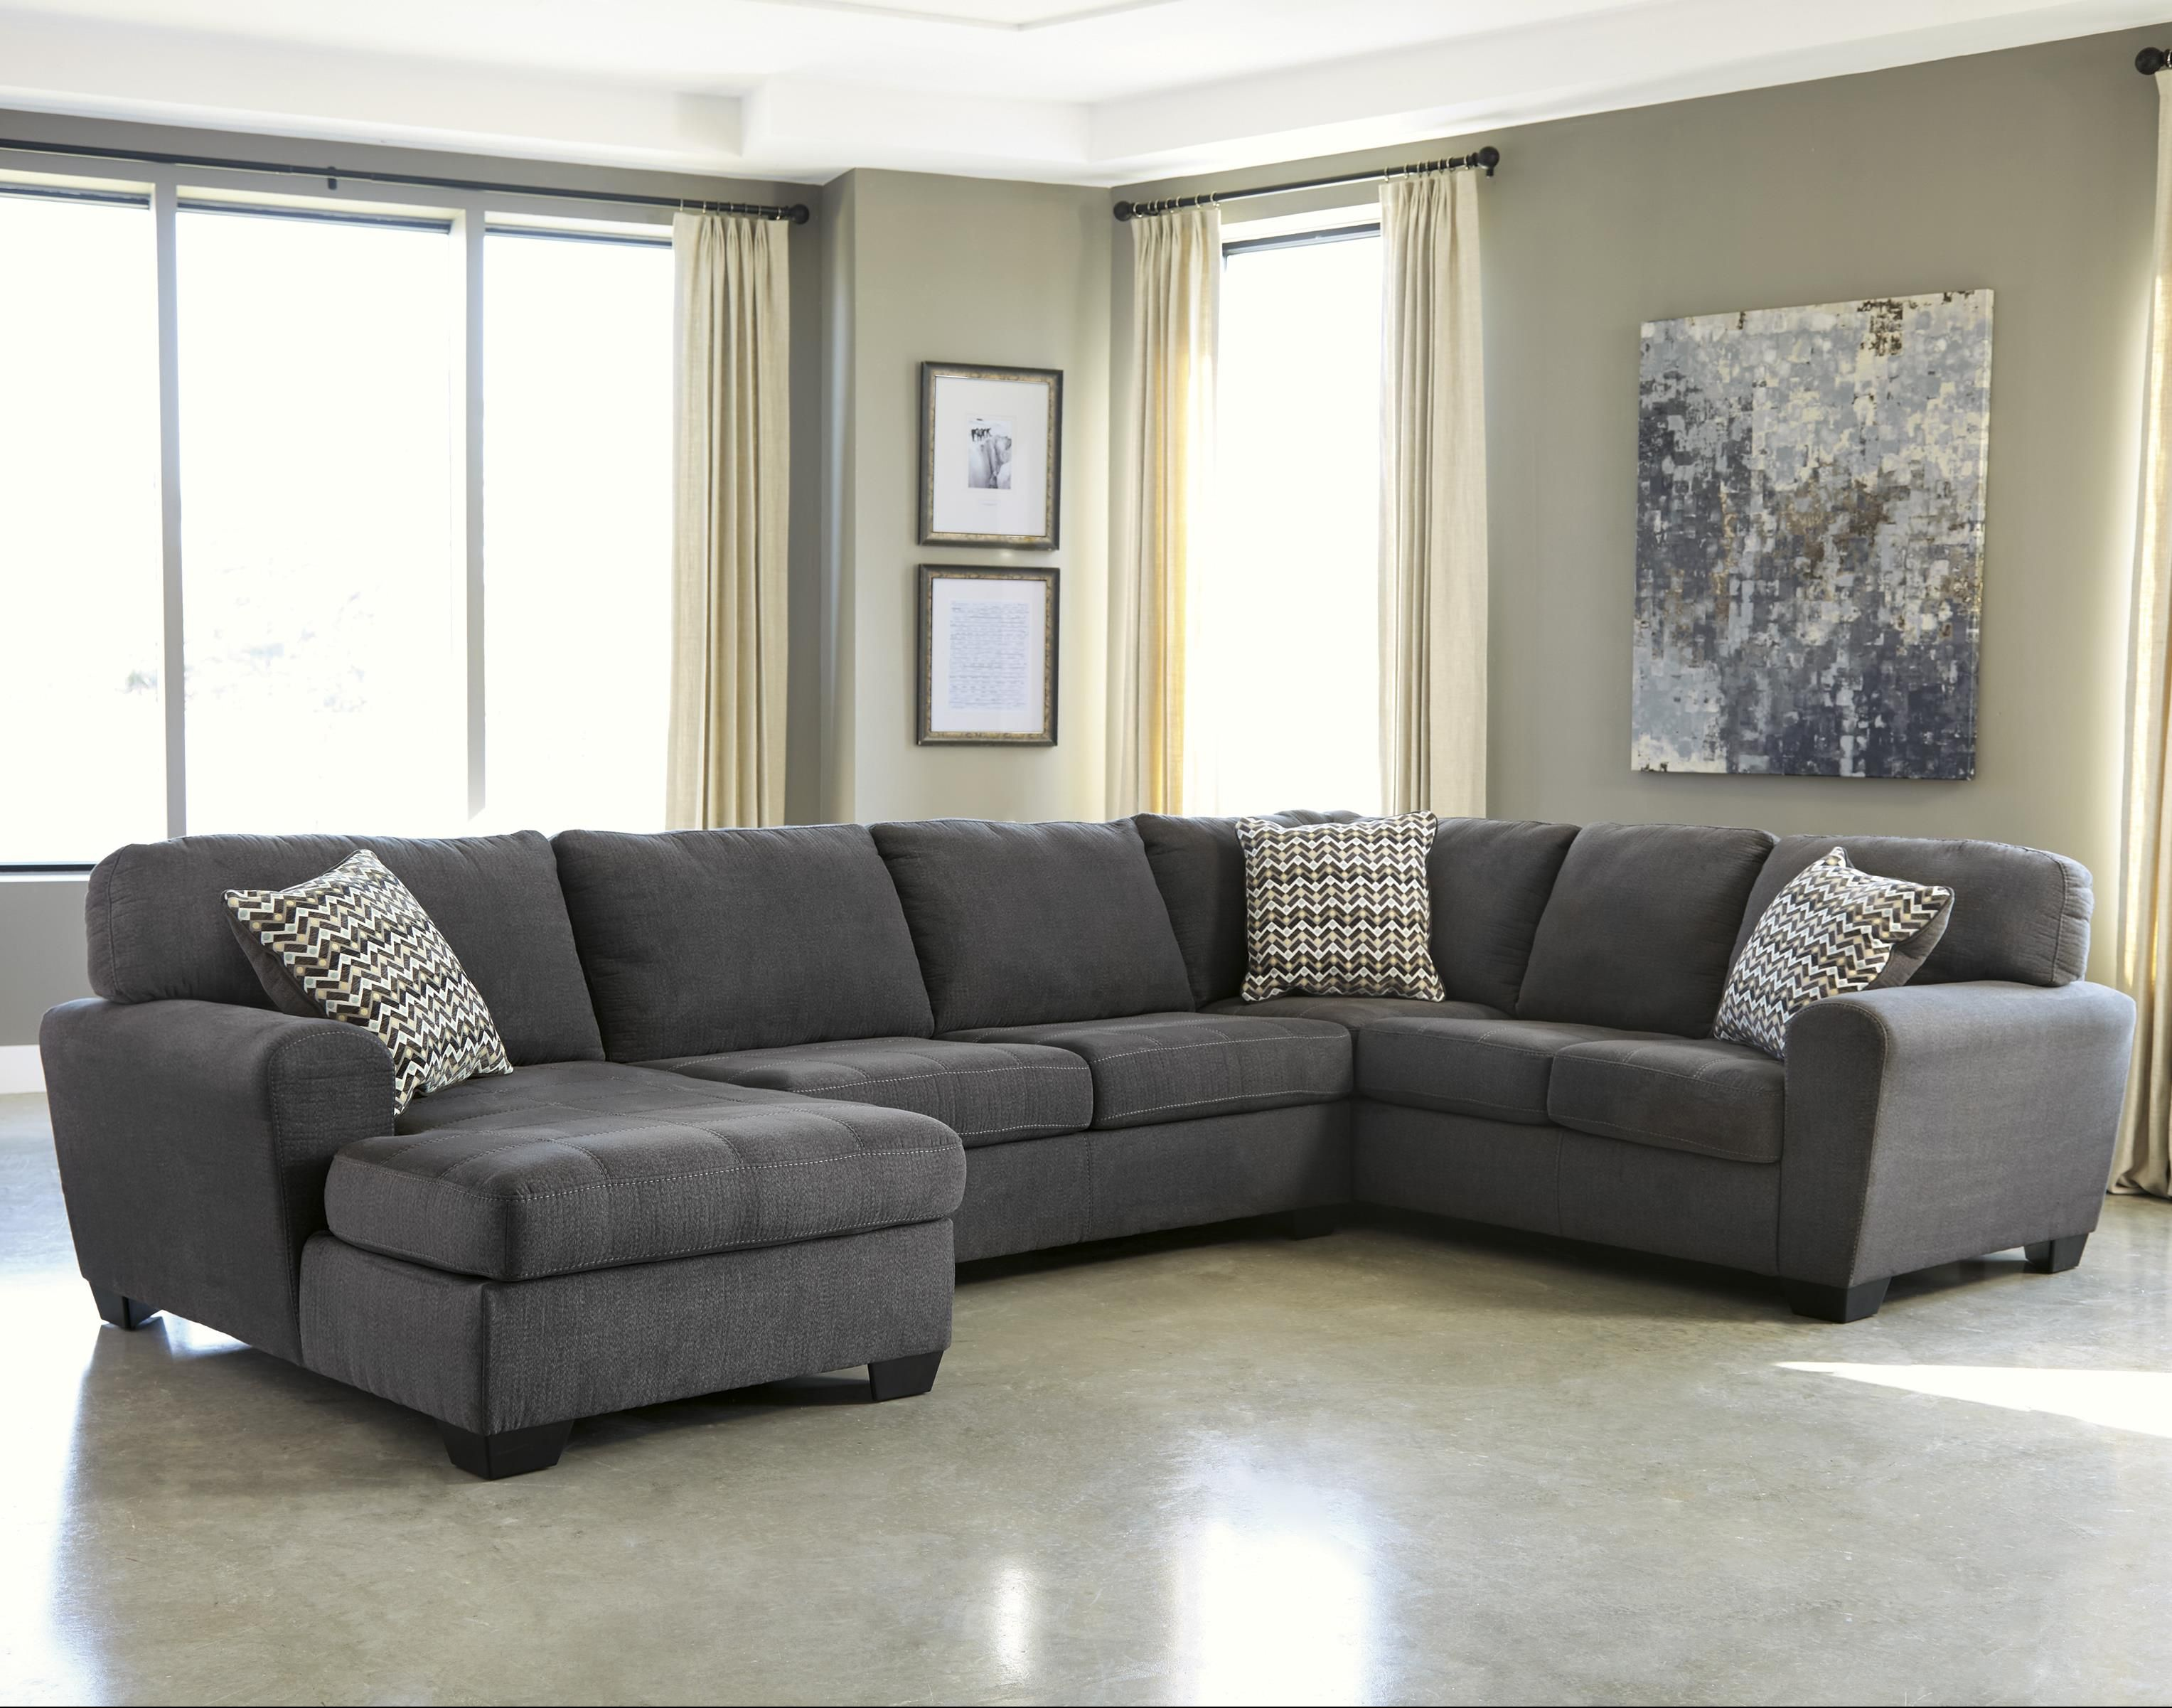 Sorenton Contemporary 3 Piece Sectional With Left Chaise By Ashley Living Room Sectional Living Room Furniture Furniture #taft #furniture #living #room #sets